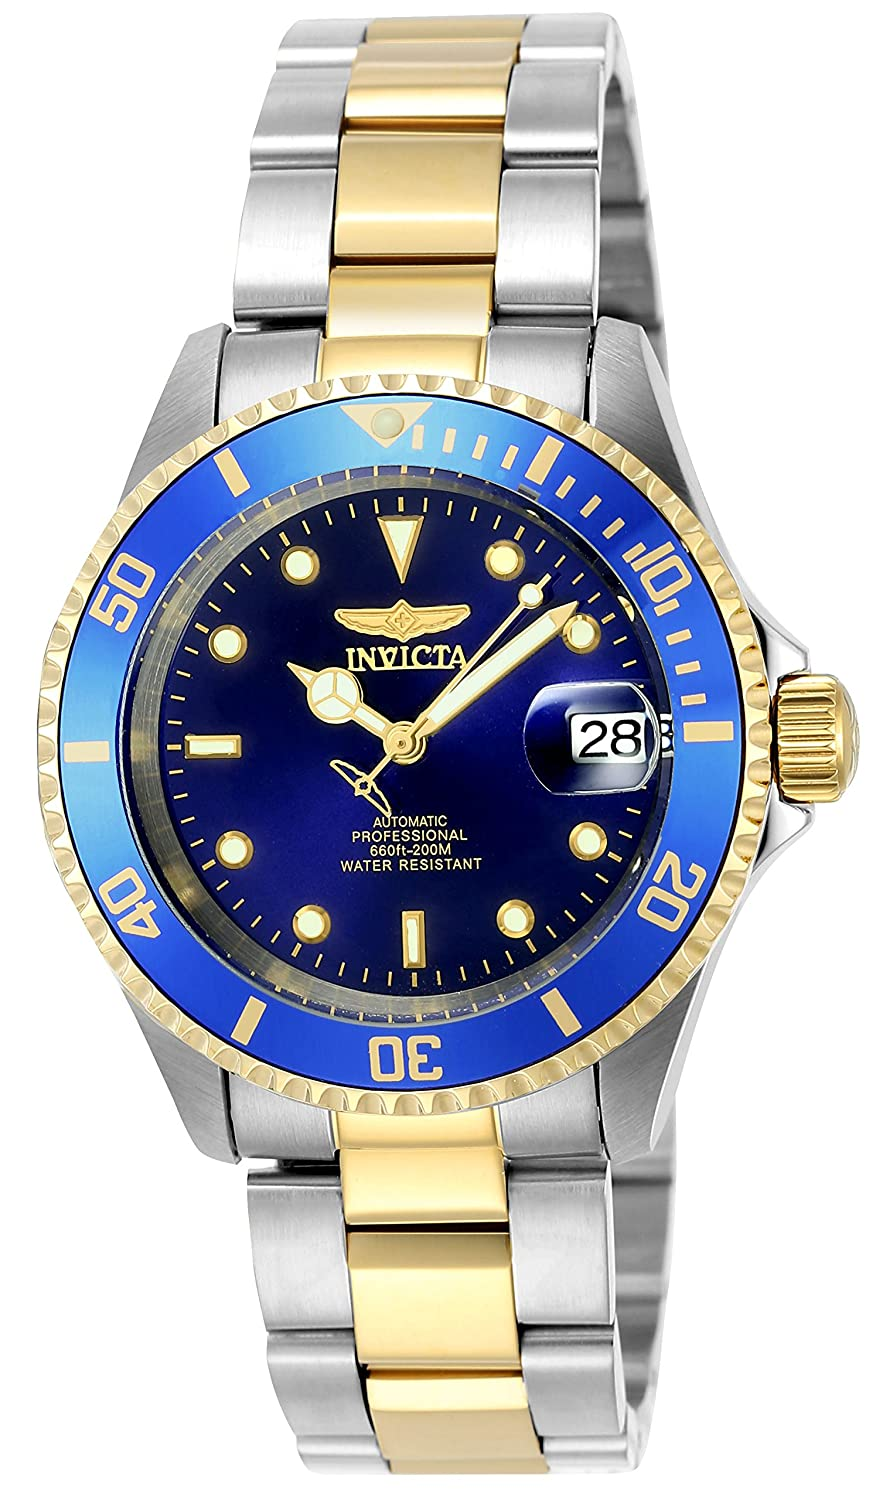 watches outlet amazon co uk invicta unisex pro diver automatic watch blue dial analogue display and multicolour gold plated